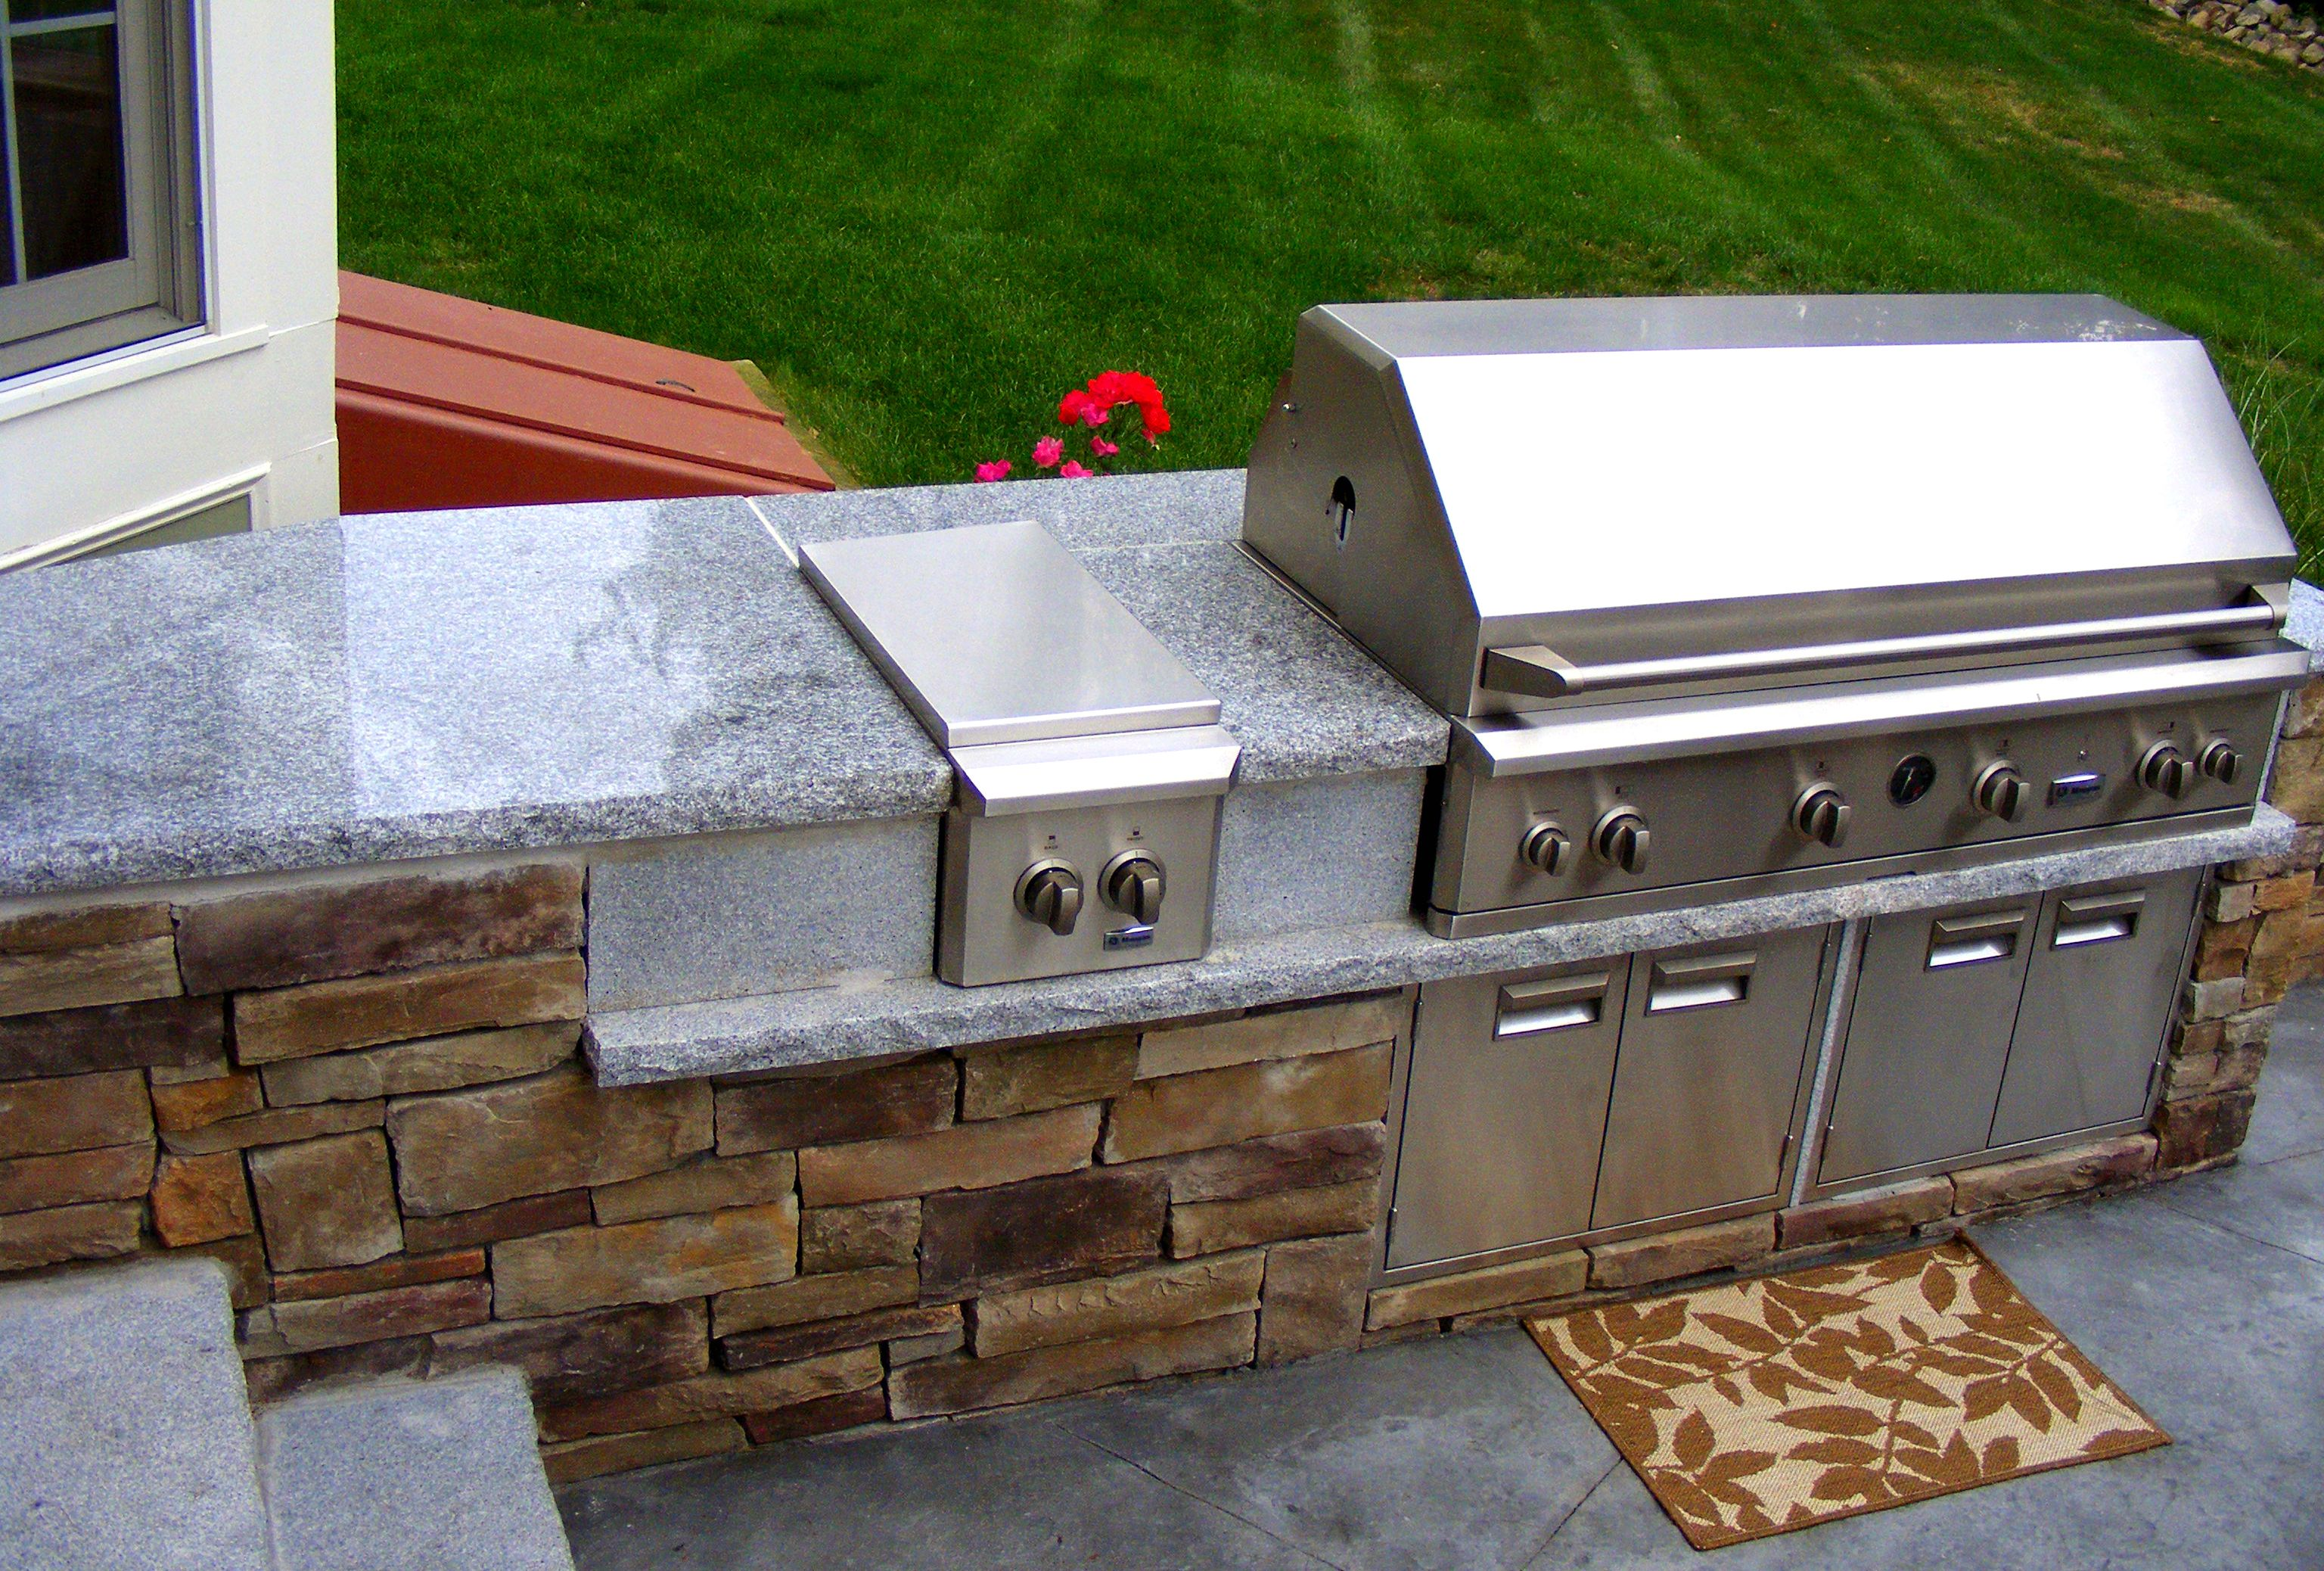 outdoor kitchen a compilation of natural stone and granite were used to create this outdoor on outdoor kitchen natural id=95328